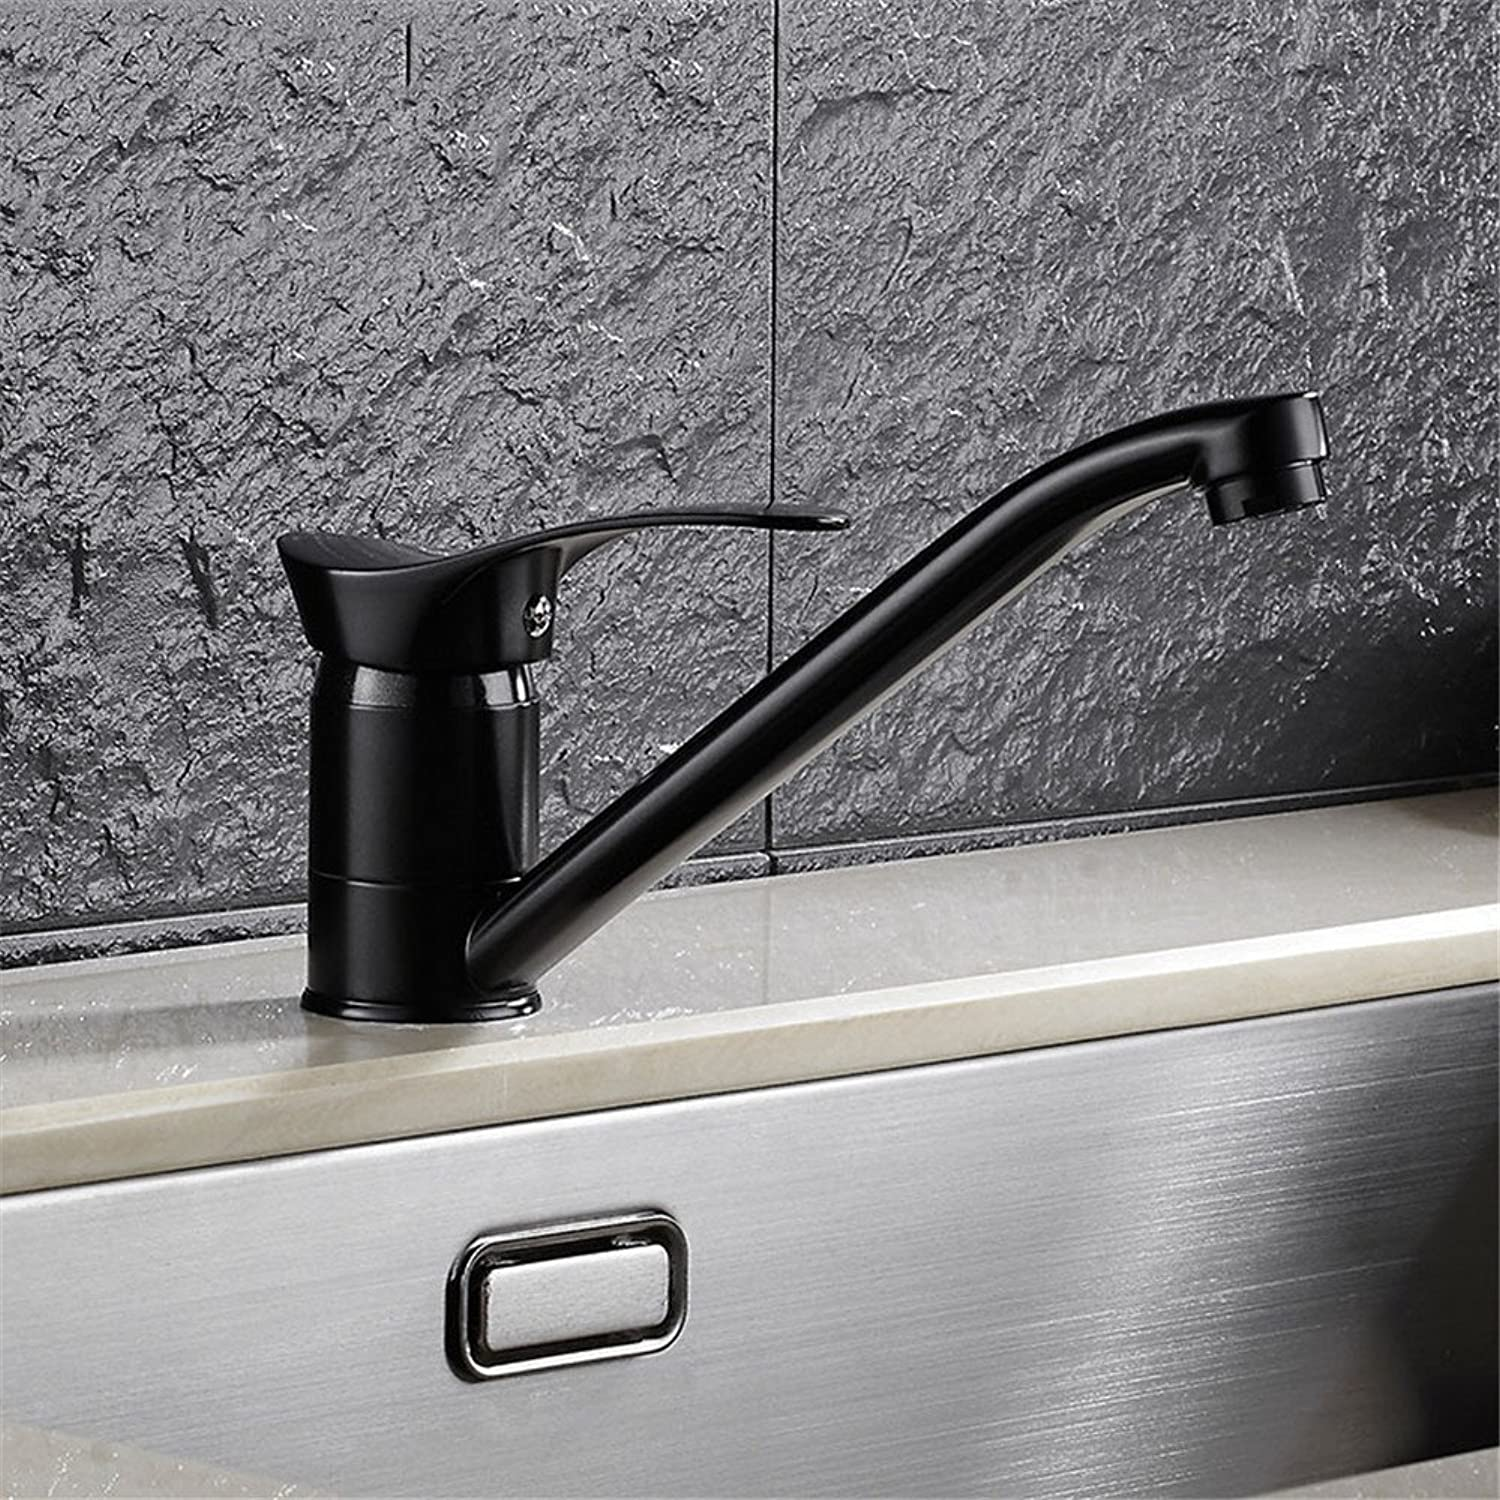 Hlluya Professional Sink Mixer Tap Kitchen Faucet Antique kitchen faucet, full copper cold water to wash dishes basin mixer